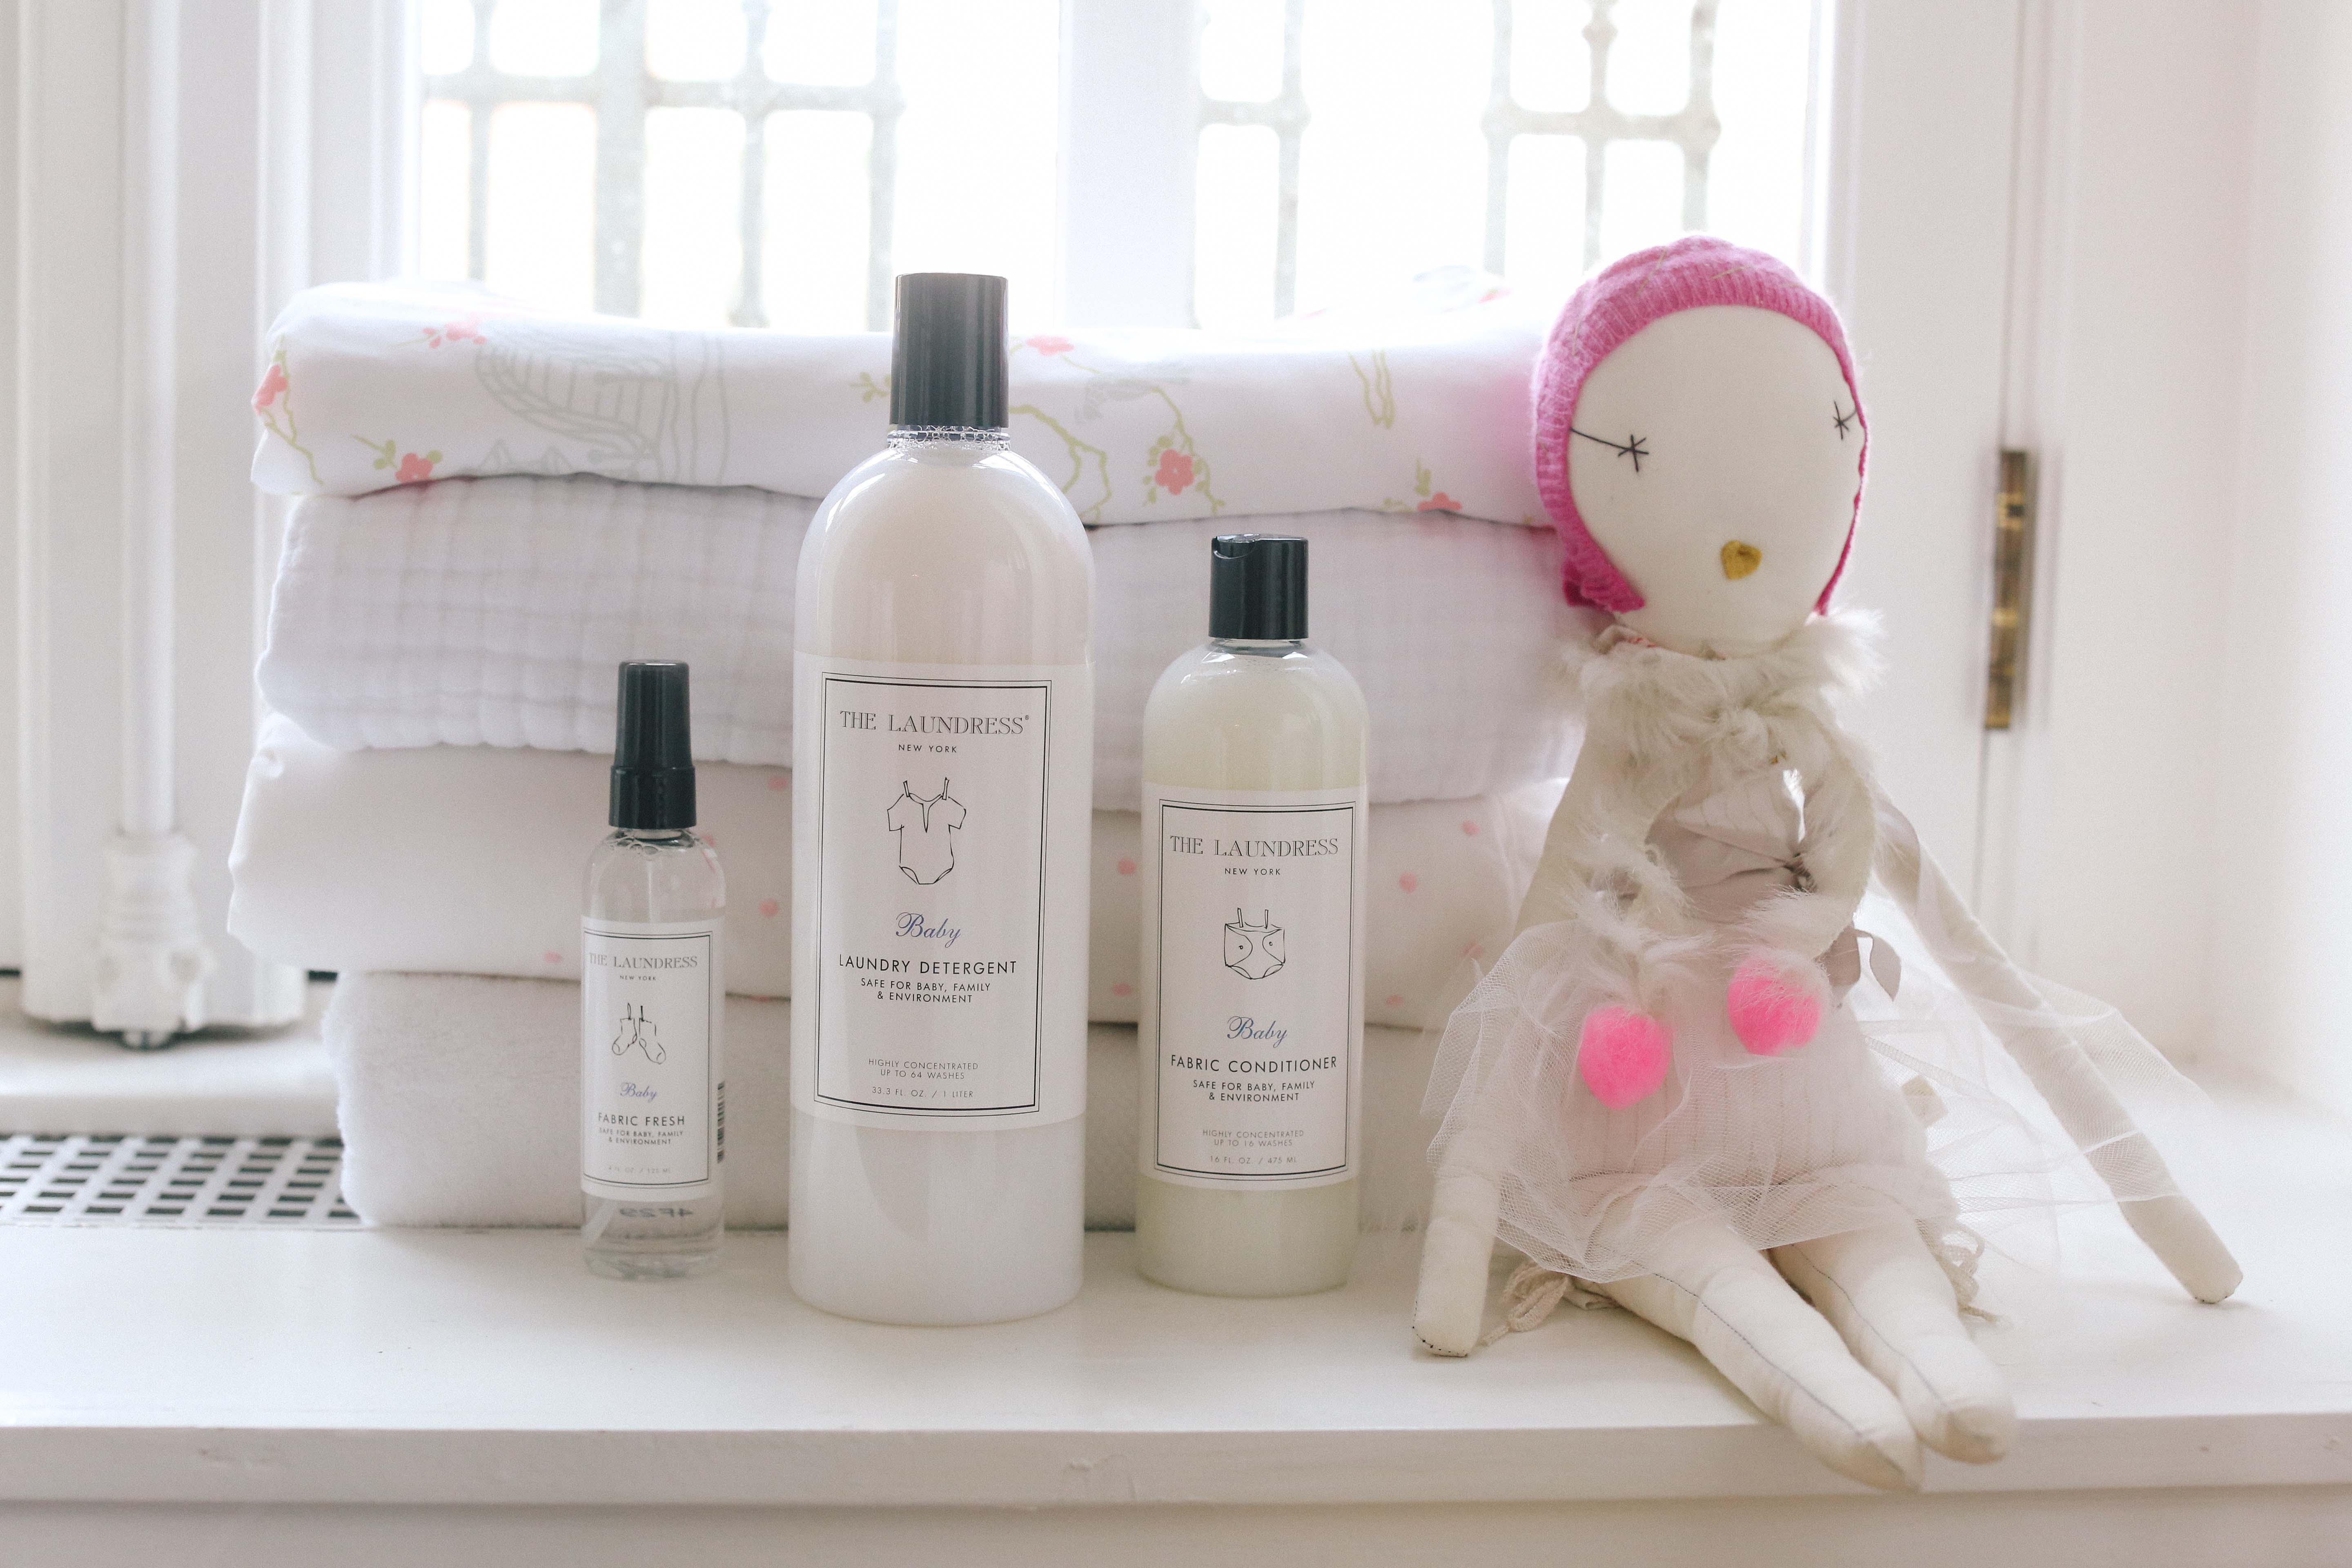 The Baby Collection from The Laundress: Heavenly-Scented Laundry? Yes, Please.